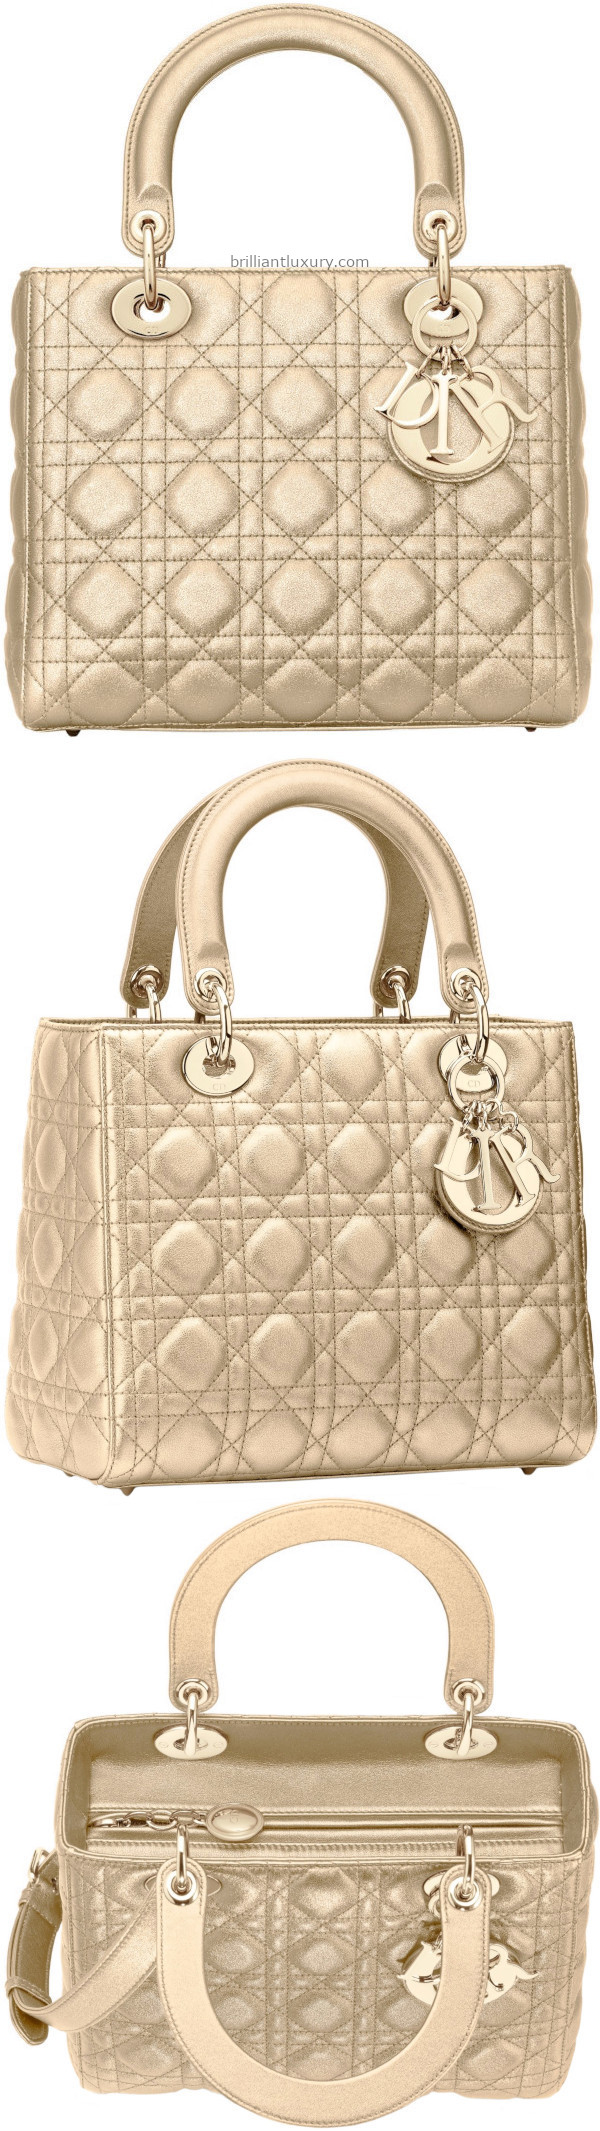 Light Gold Metallic Dior Bag